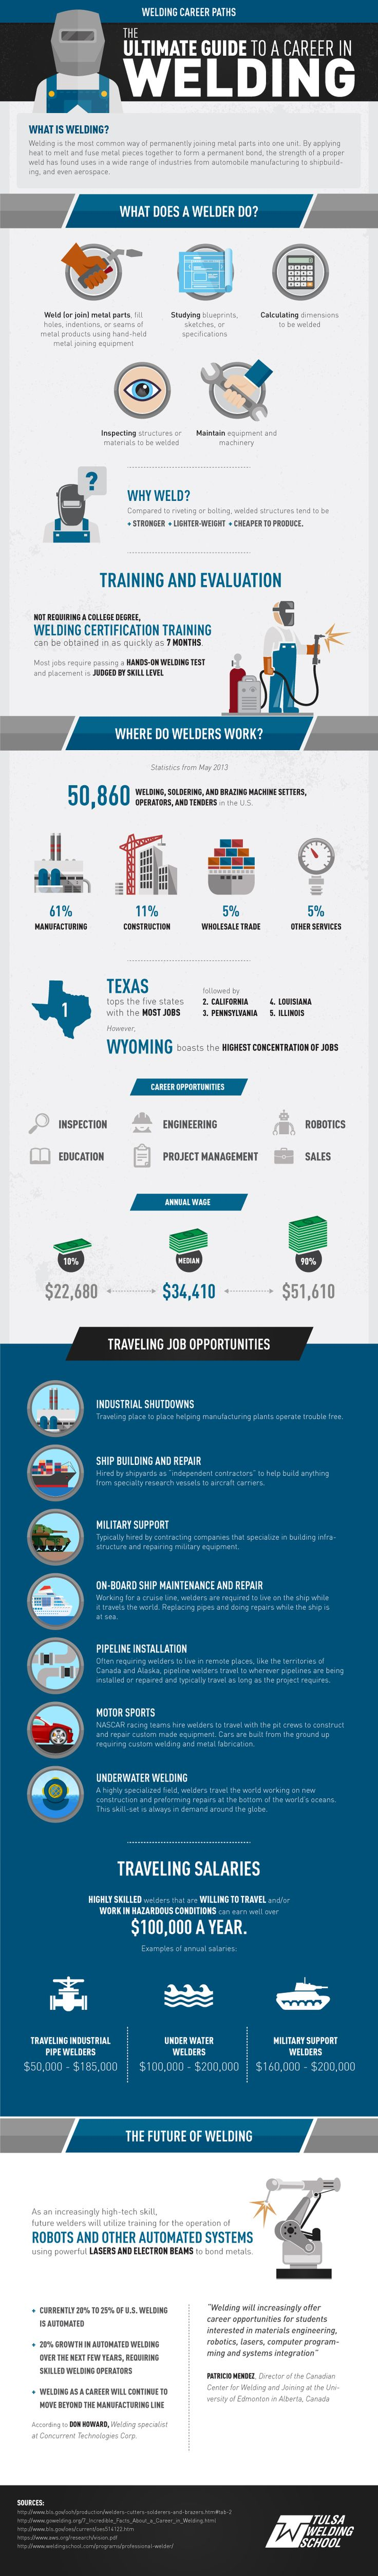 This infographic, created by the Tulsa Welding School, provides great information about planning for a career in Welding. It also shows that Illinois is the fifth state with the most Welding jobs in the country!